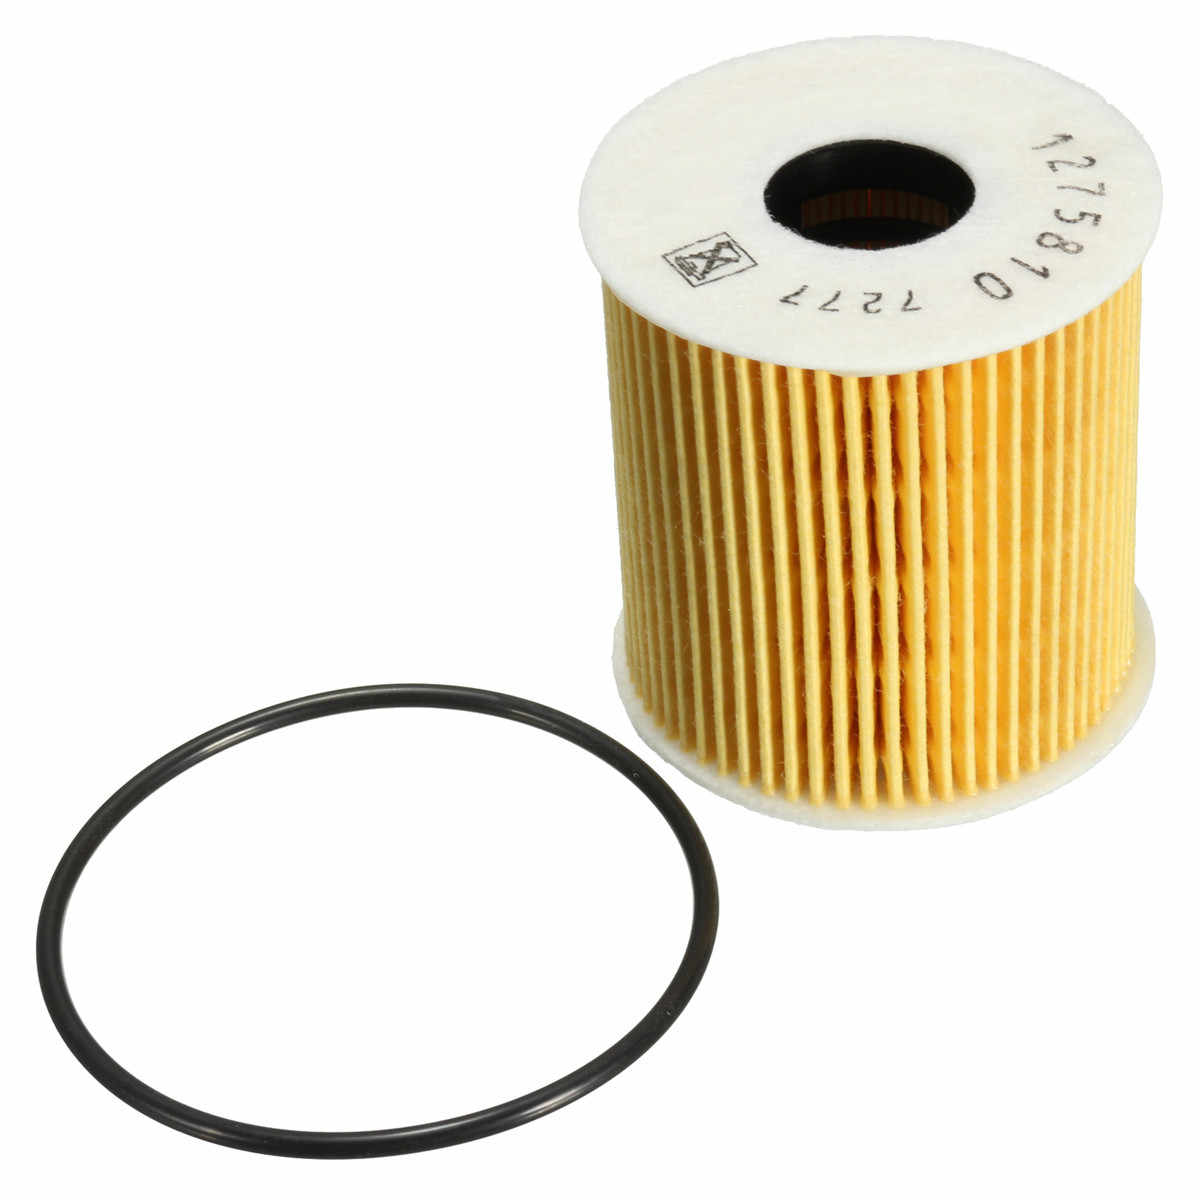 Car Oil Filter Paper Element Washer for Volvo XC70 XC 90 V70 V40 S80 S70 S60 1275810